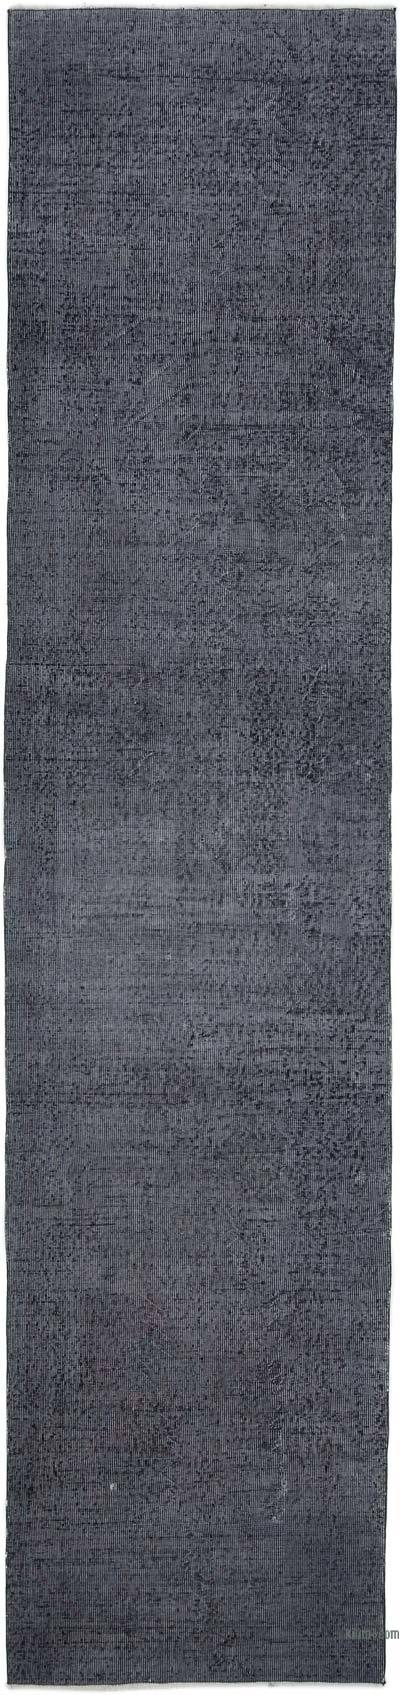 Over-dyed Turkish Vintage Runner Rug - 3'  x 13'  (36 in. x 156 in.)